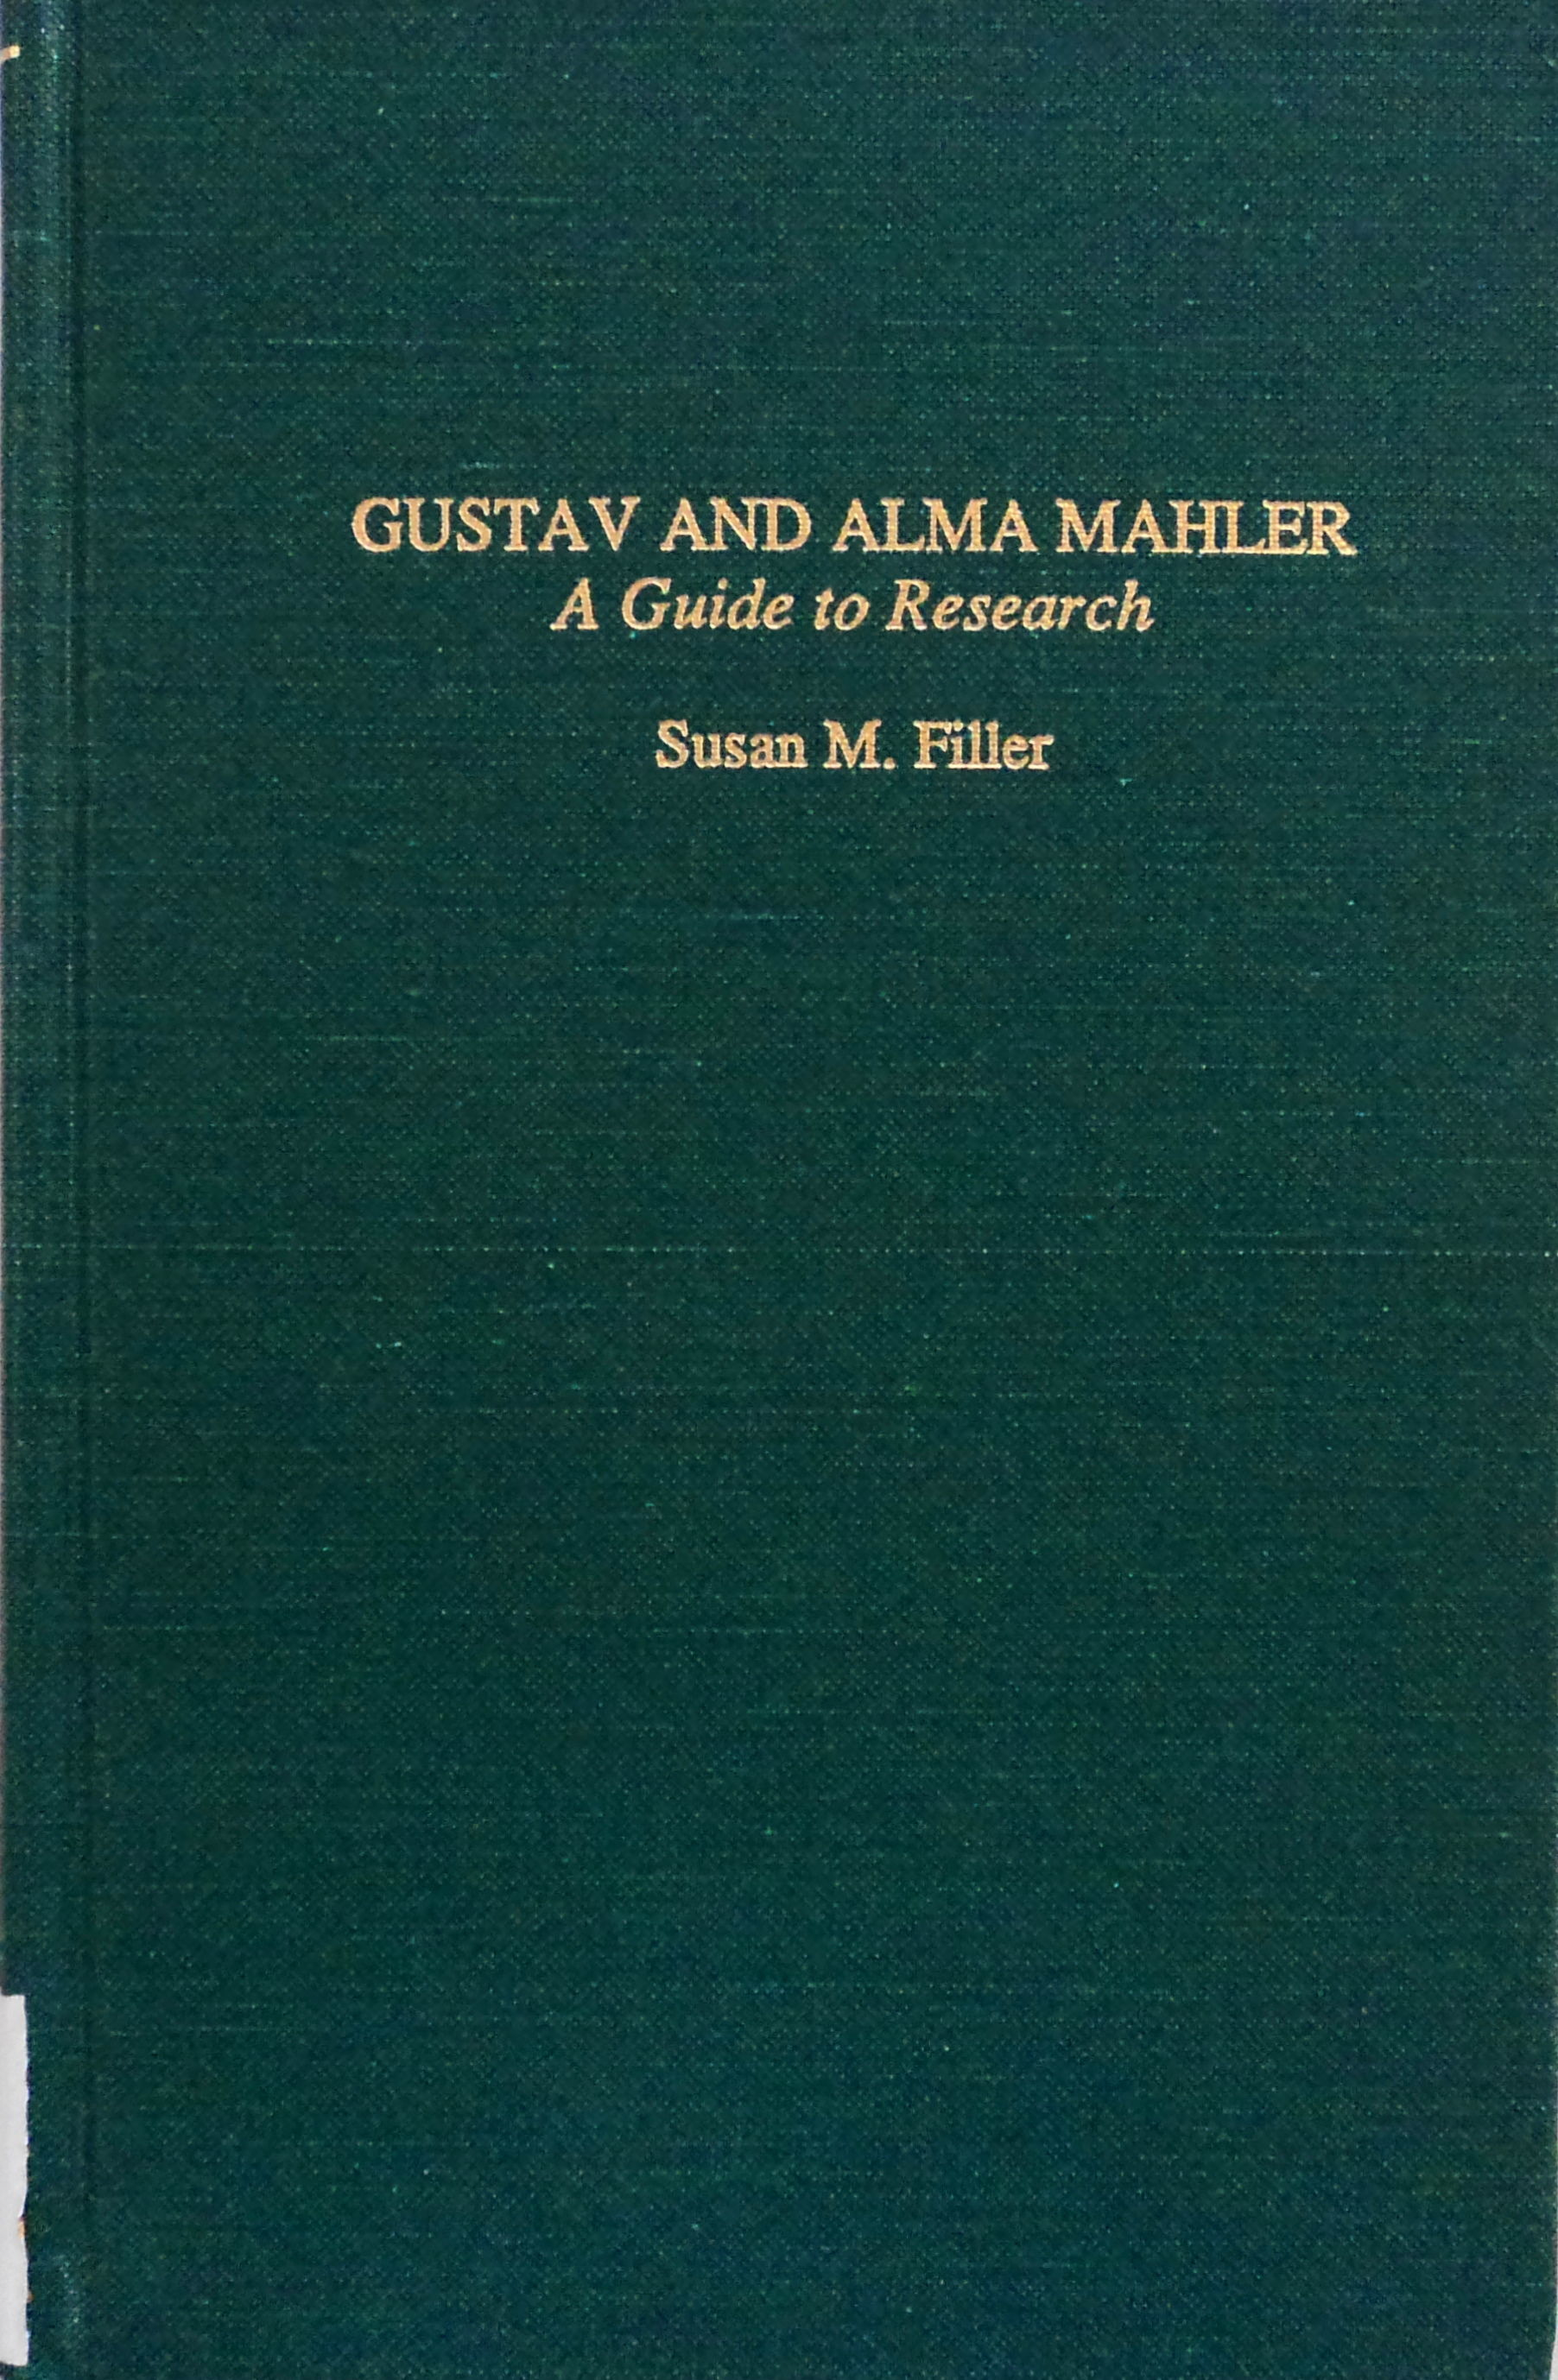 Cover Art for Gustav and Alma Mahler: A Guide to Research